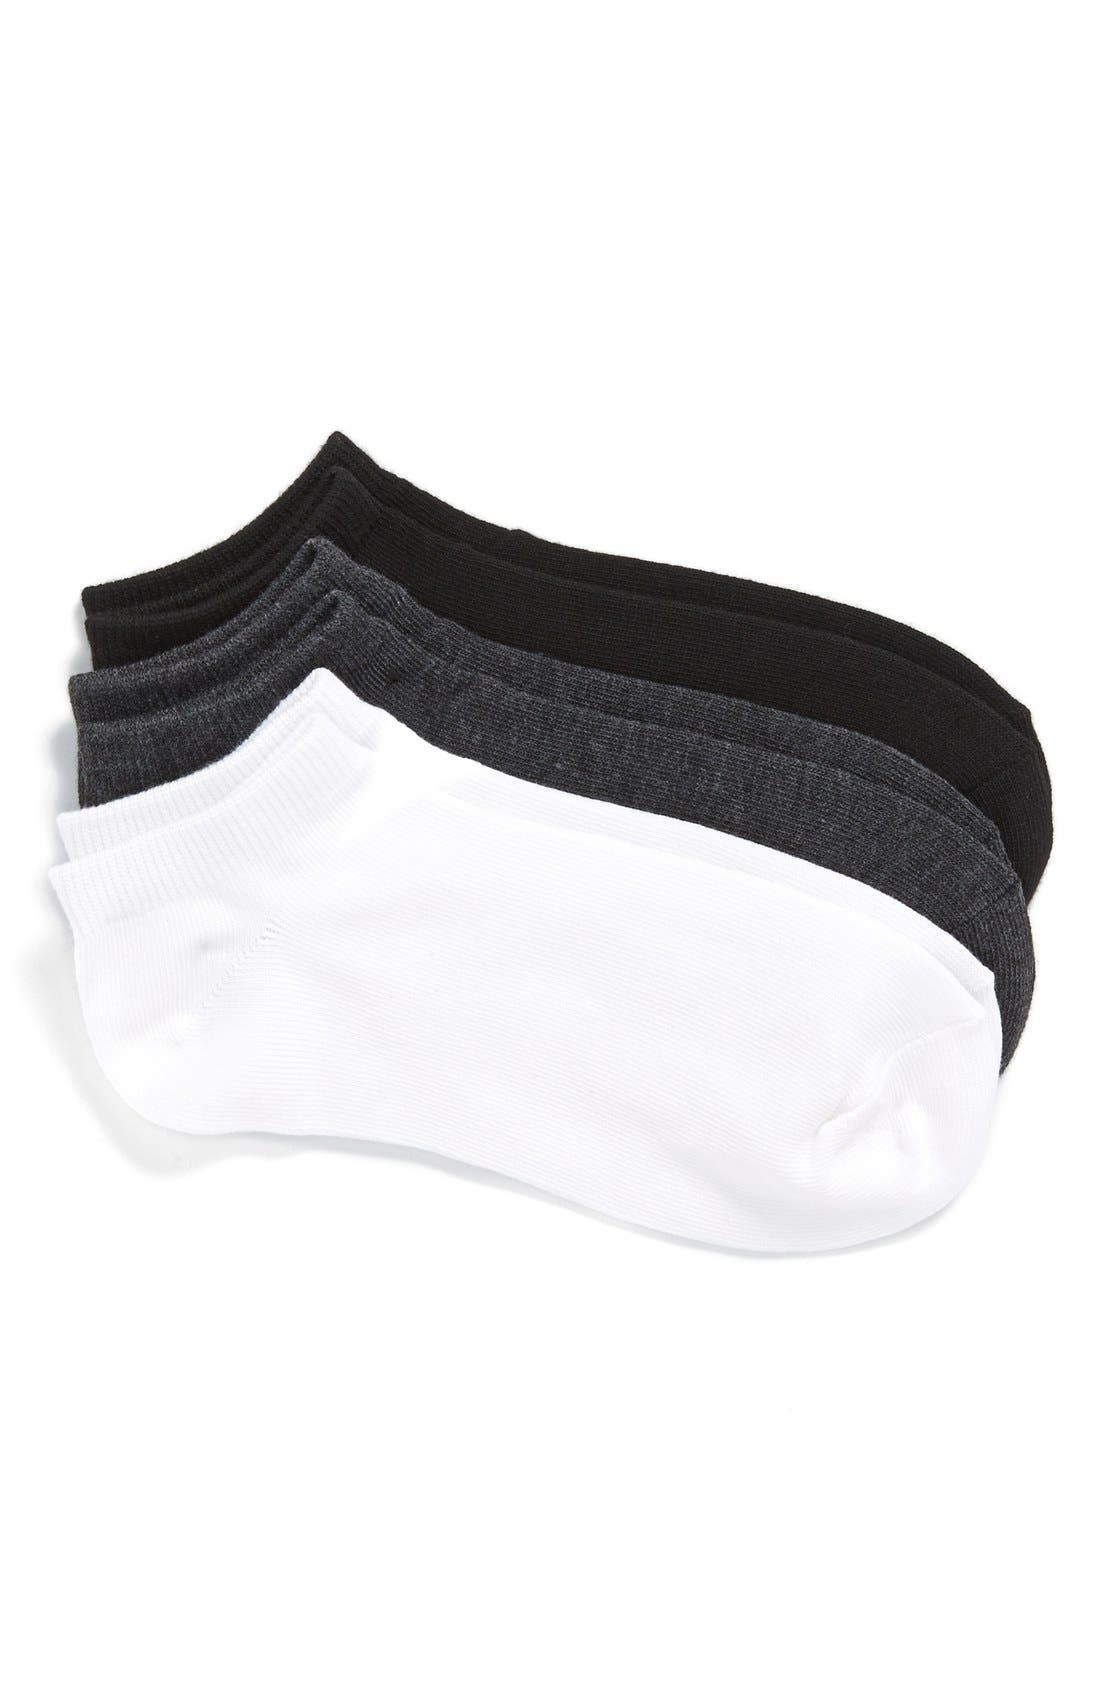 Nordstrom 3-Pack Ankle Socks